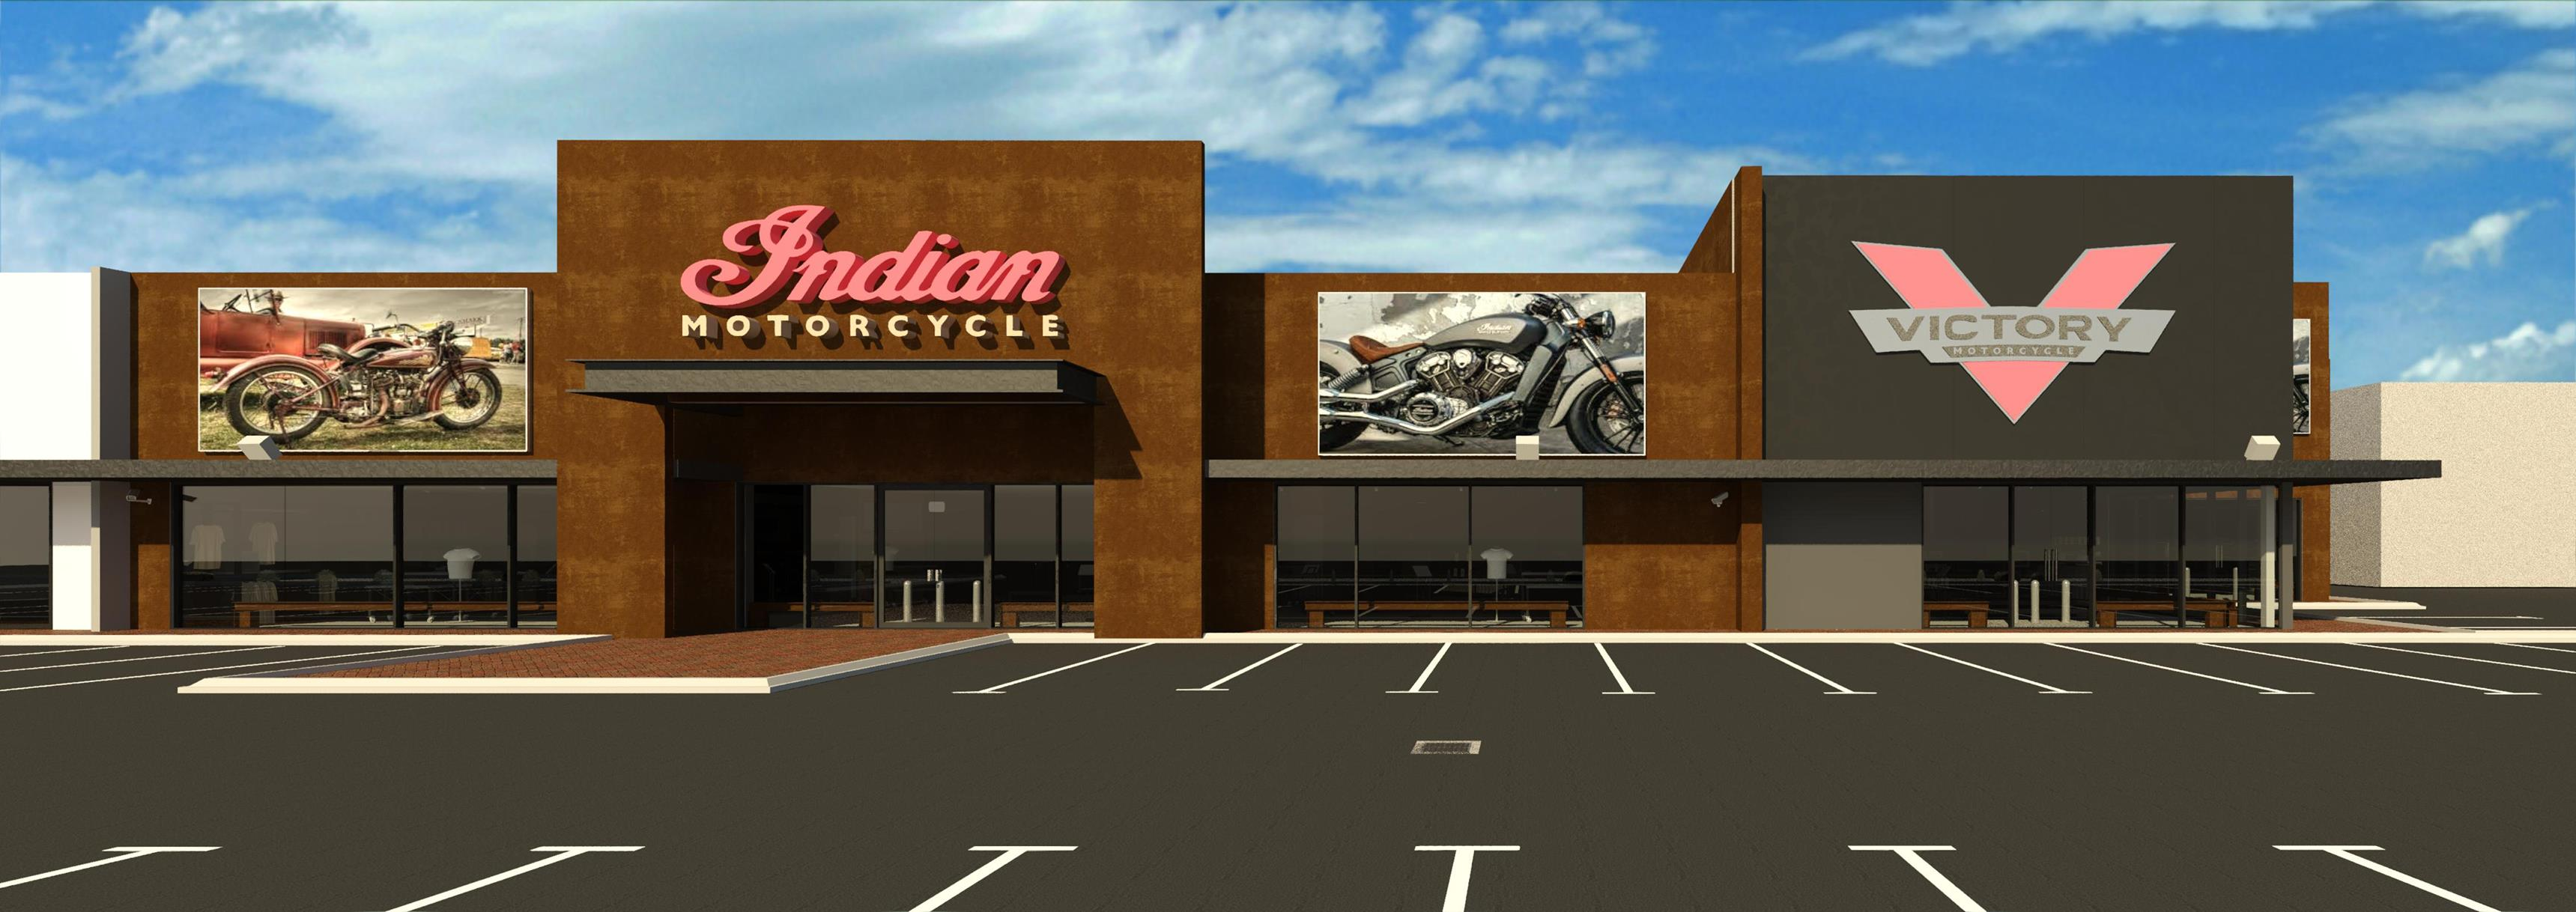 stores Victory-Indian-Perth-Dealership-Artistic-Render.jpg